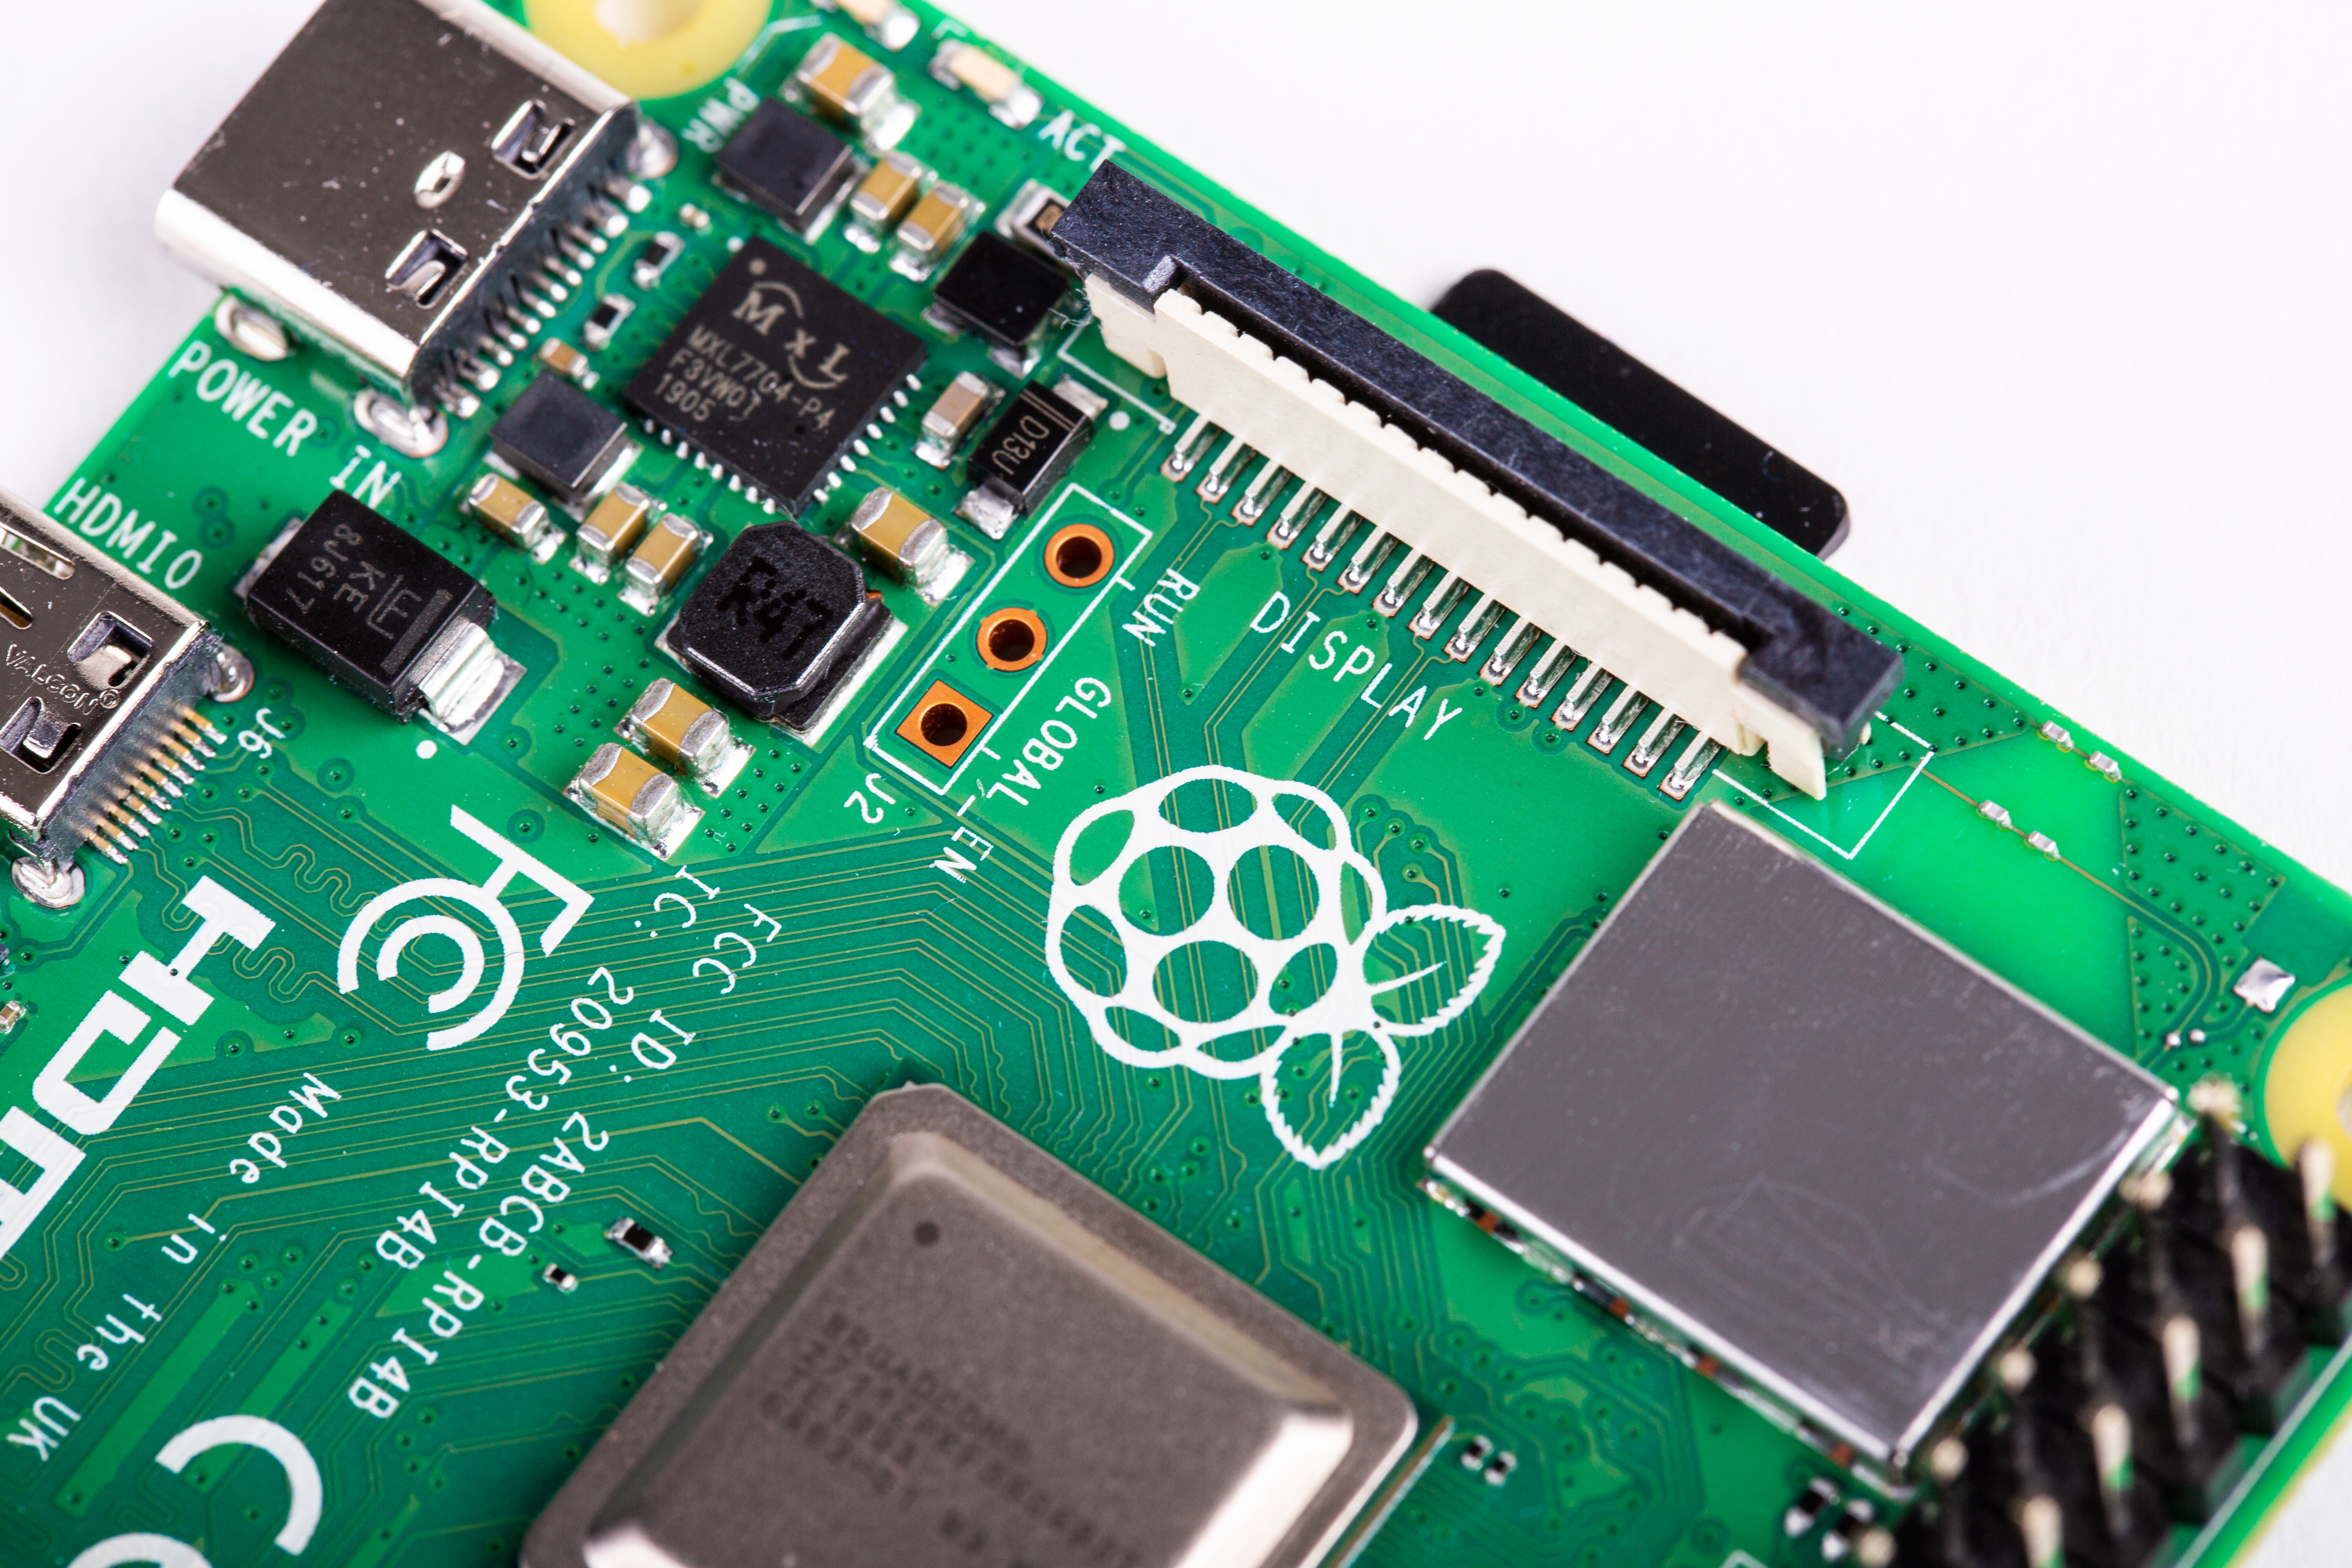 A close-up of a Raspberry Pi, showing the CPU and a HDMI port.